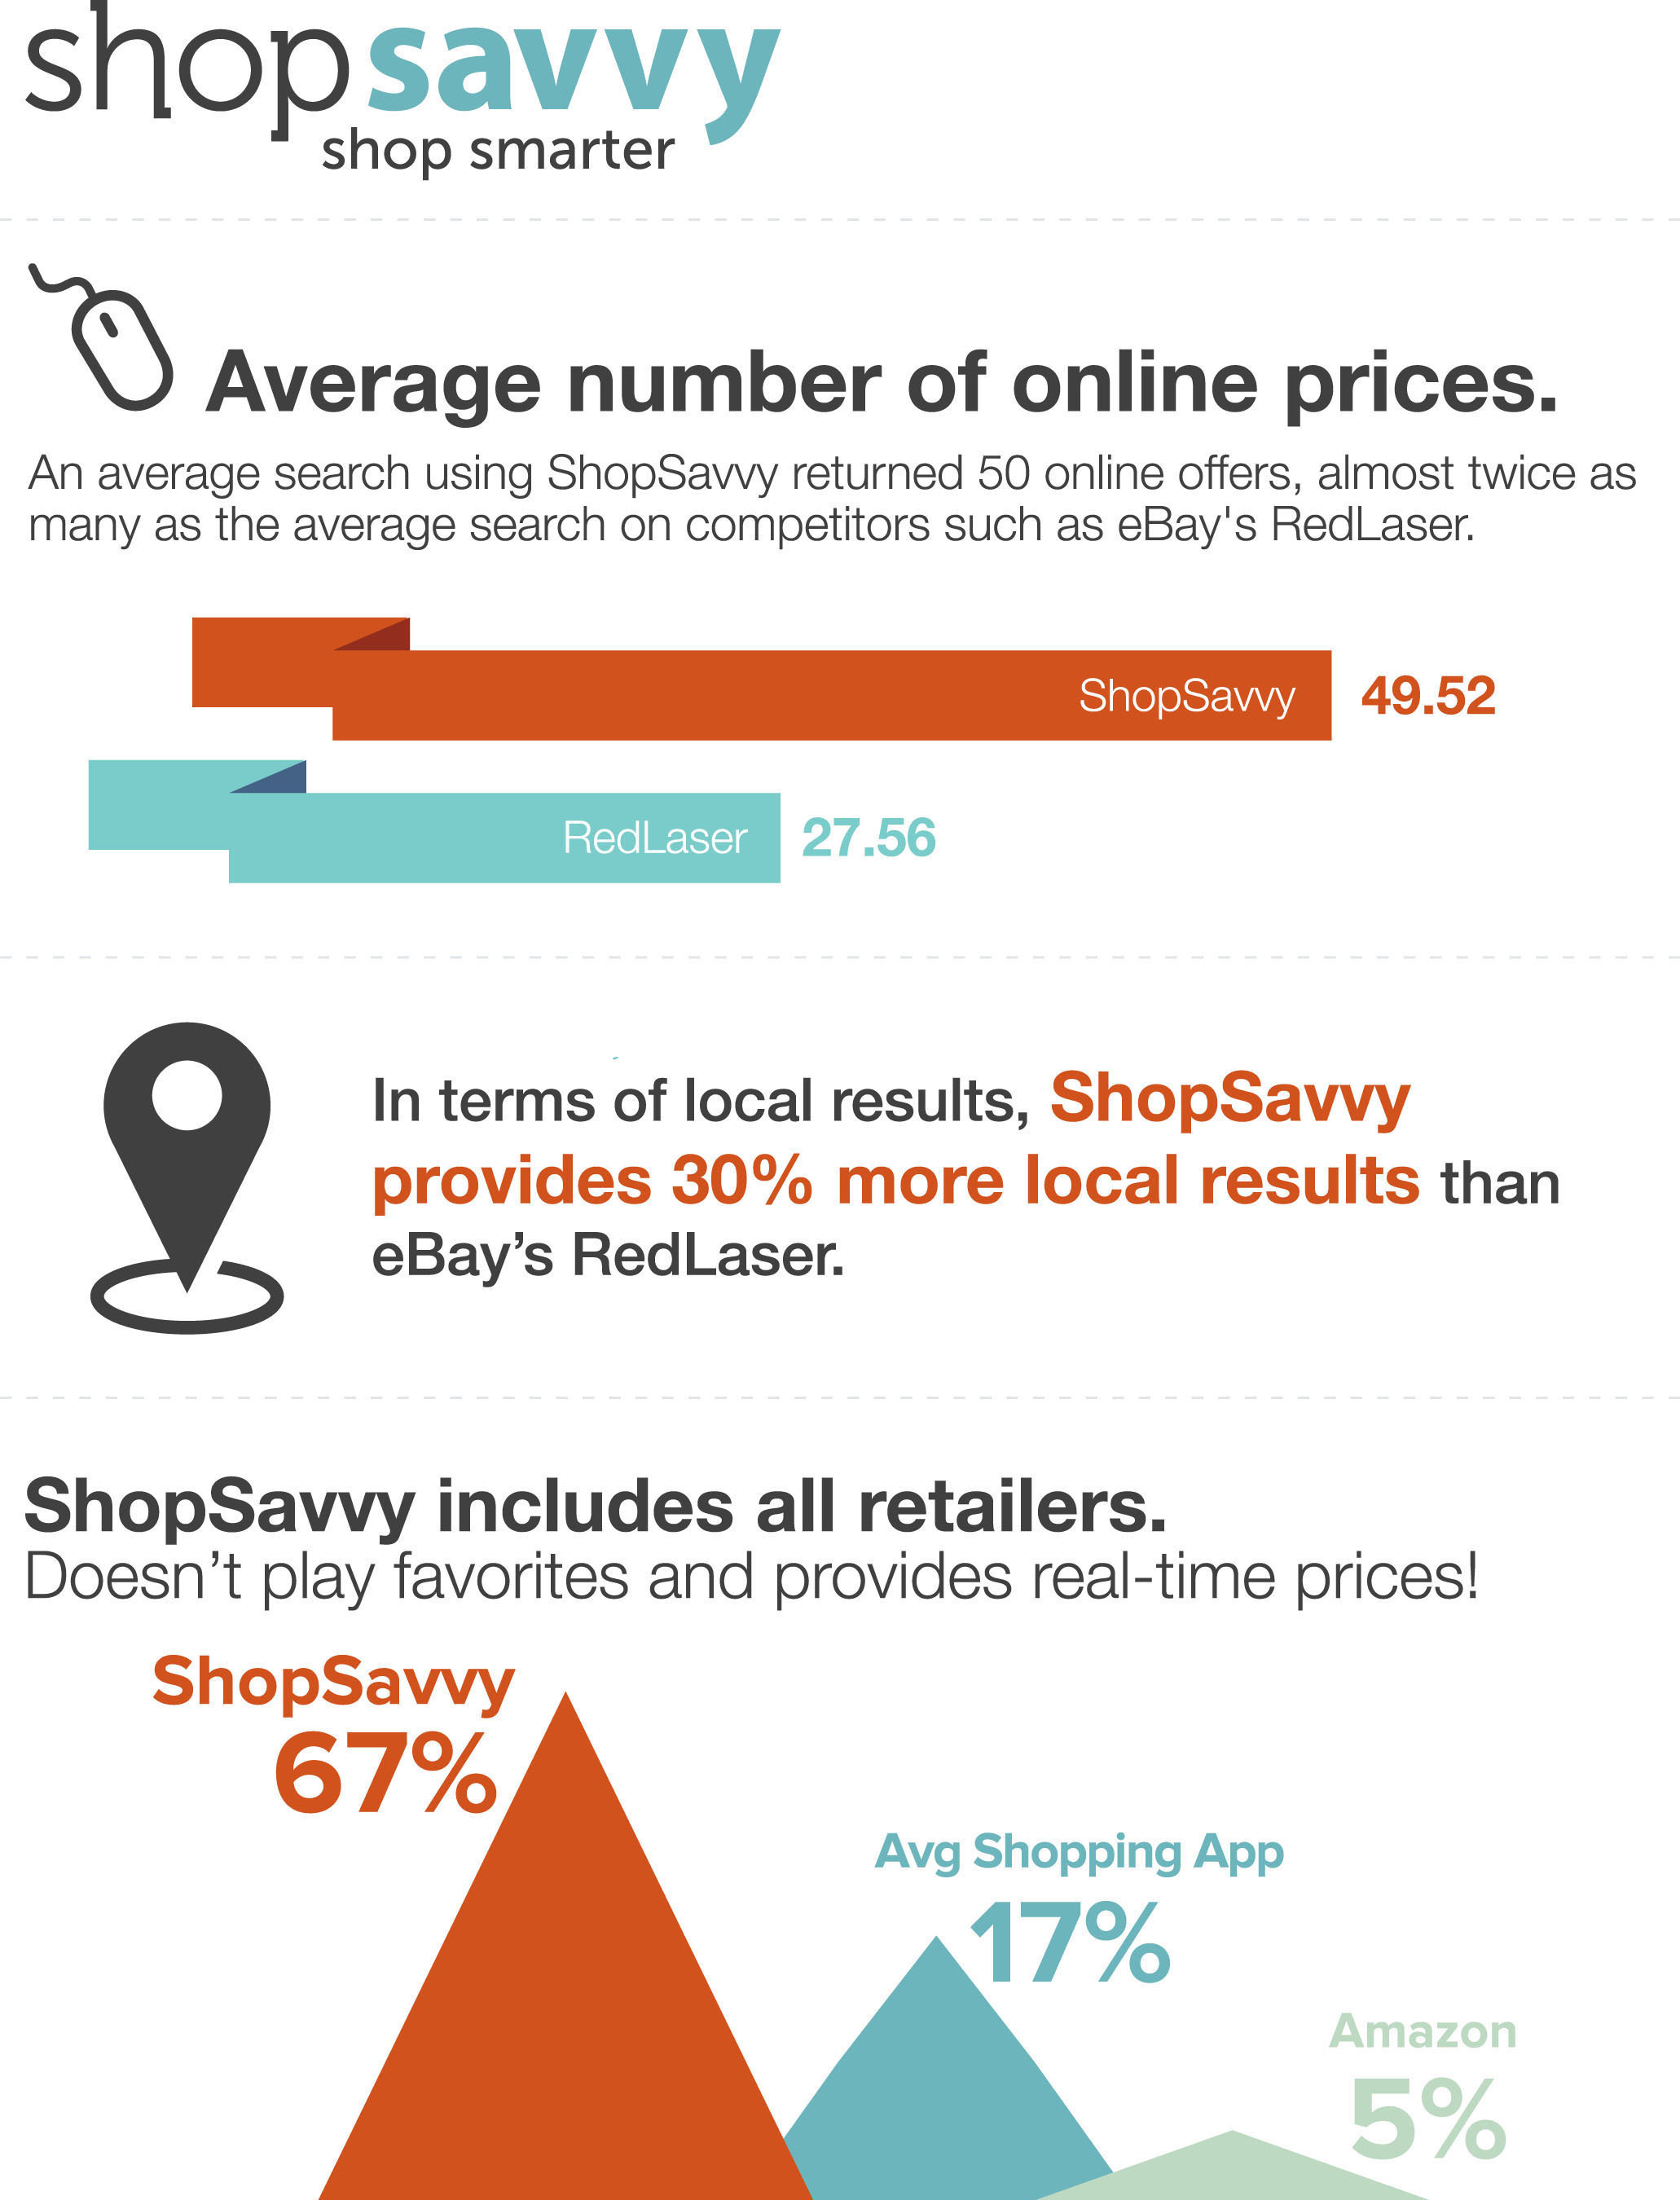 New Big Data solution, Product Cloud 2.0, empowers ShopSavvy to provide its millions of monthly active users ...